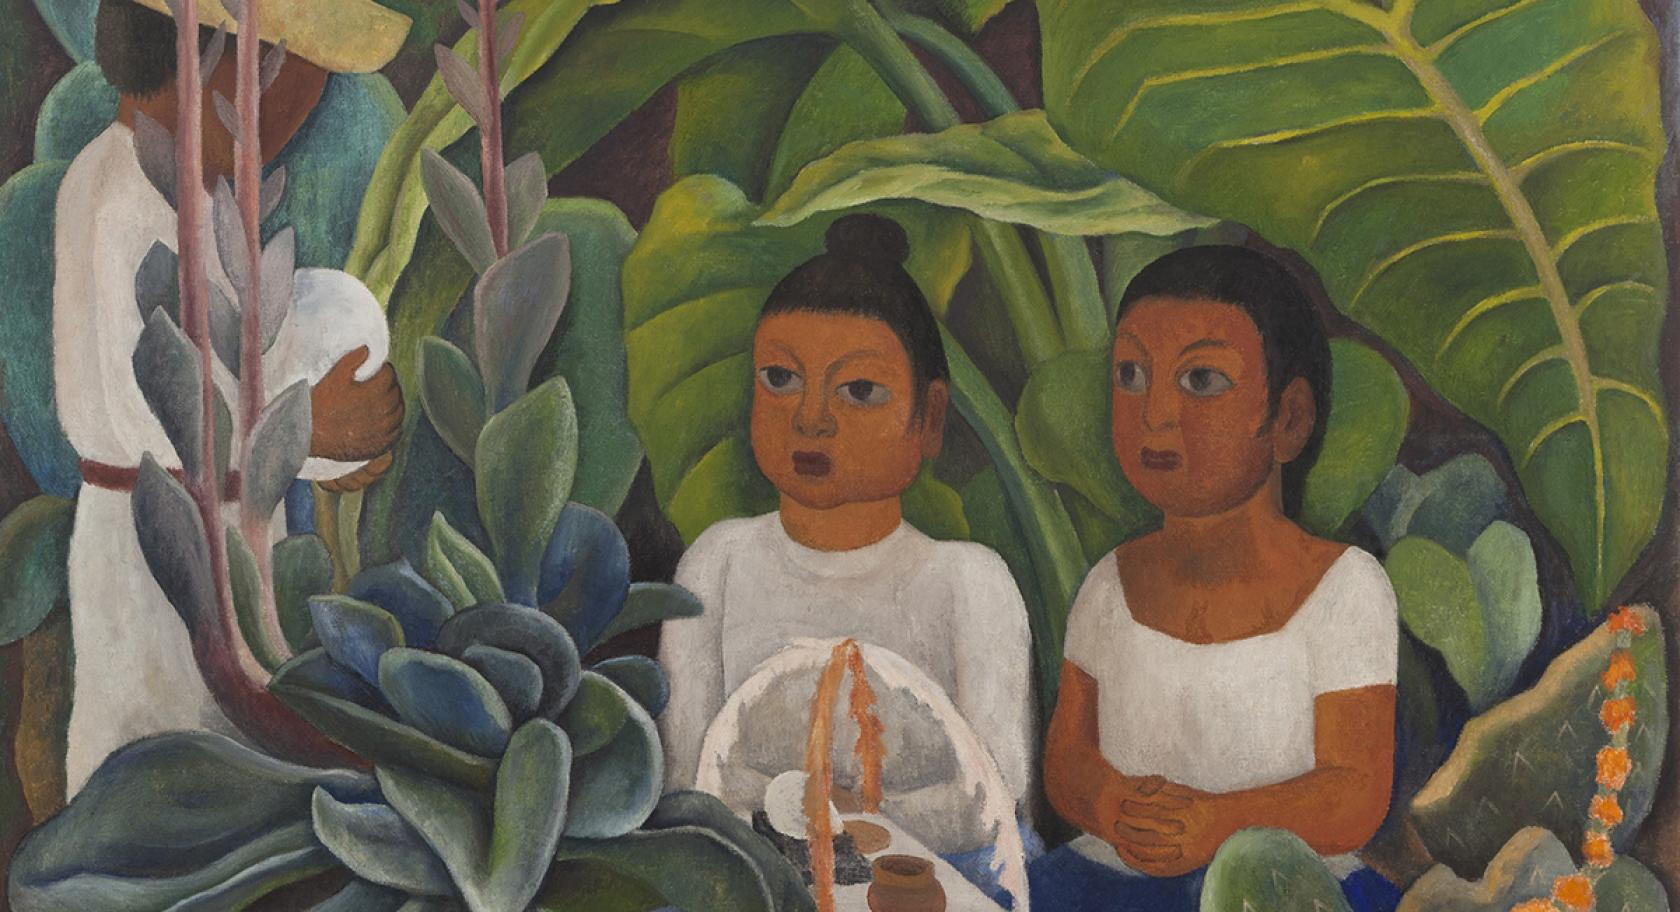 Diego Rivera (Mexican, 1886-1957), La ofrenda, 1931, oil on canvas, 48 3⁄4 x 60 1⁄2 in., Art Bridges, image ©2017 Christie's Images Limited. ©2019 Banco de México Diego Rivera Frida Kahlo Museums Trust, Mexico, D.F. / Artists Rights Society (ARS), New York, on loan from Art Bridges